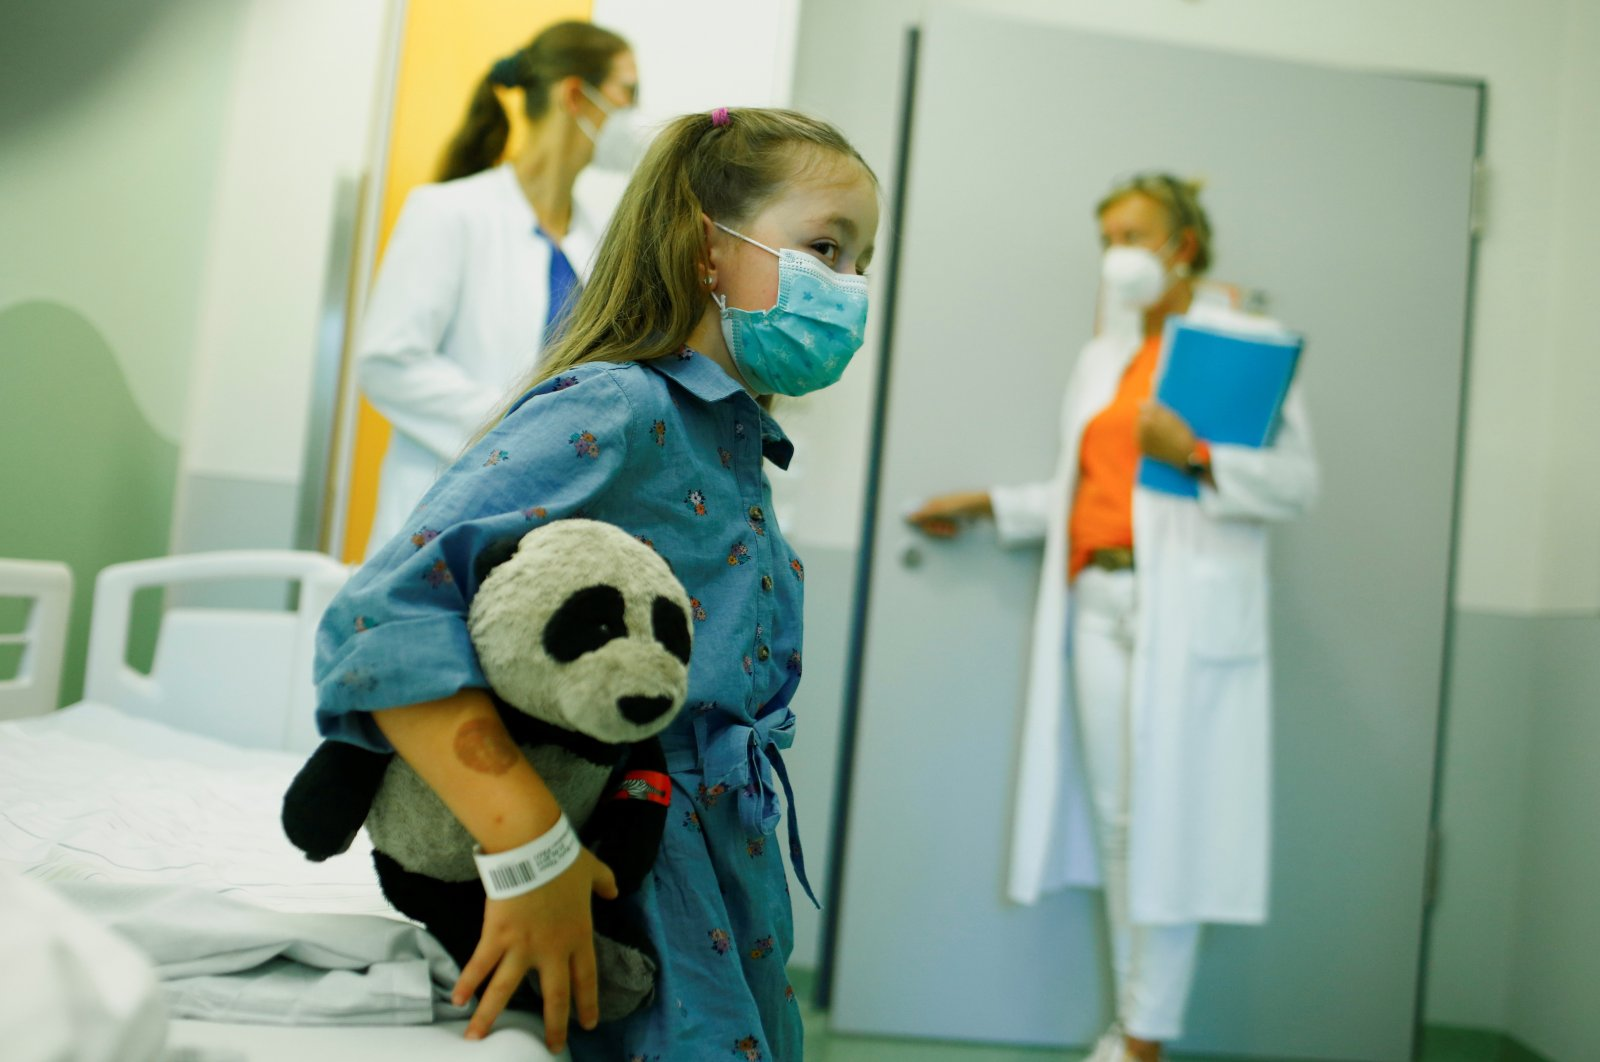 A five-year-old girl suffering from long term COVID-19 side effects sits in a treatment room of the children's hospital Universitaets-Kinderklinik, in Bochum, Germany, Sept. 8, 2021. (Reuters Photo)